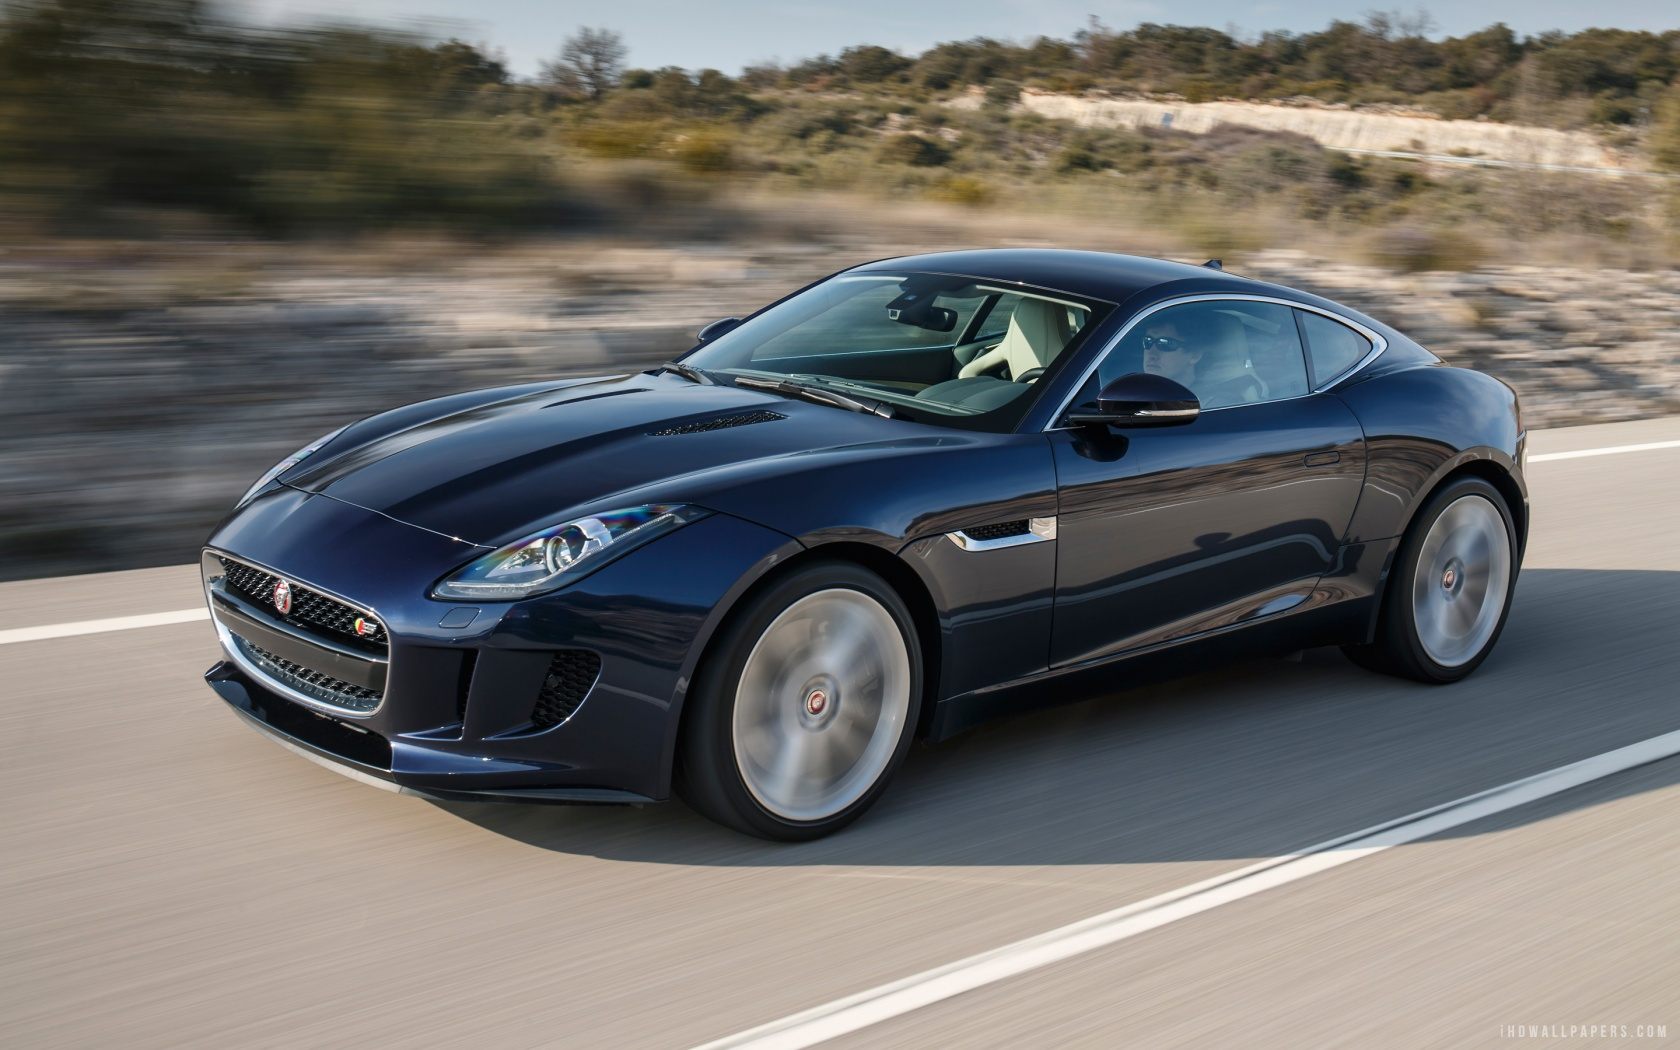 Jaguar F Type Coupe 2015 Car HD Wallpaper   iHD Wallpapers 1680x1050